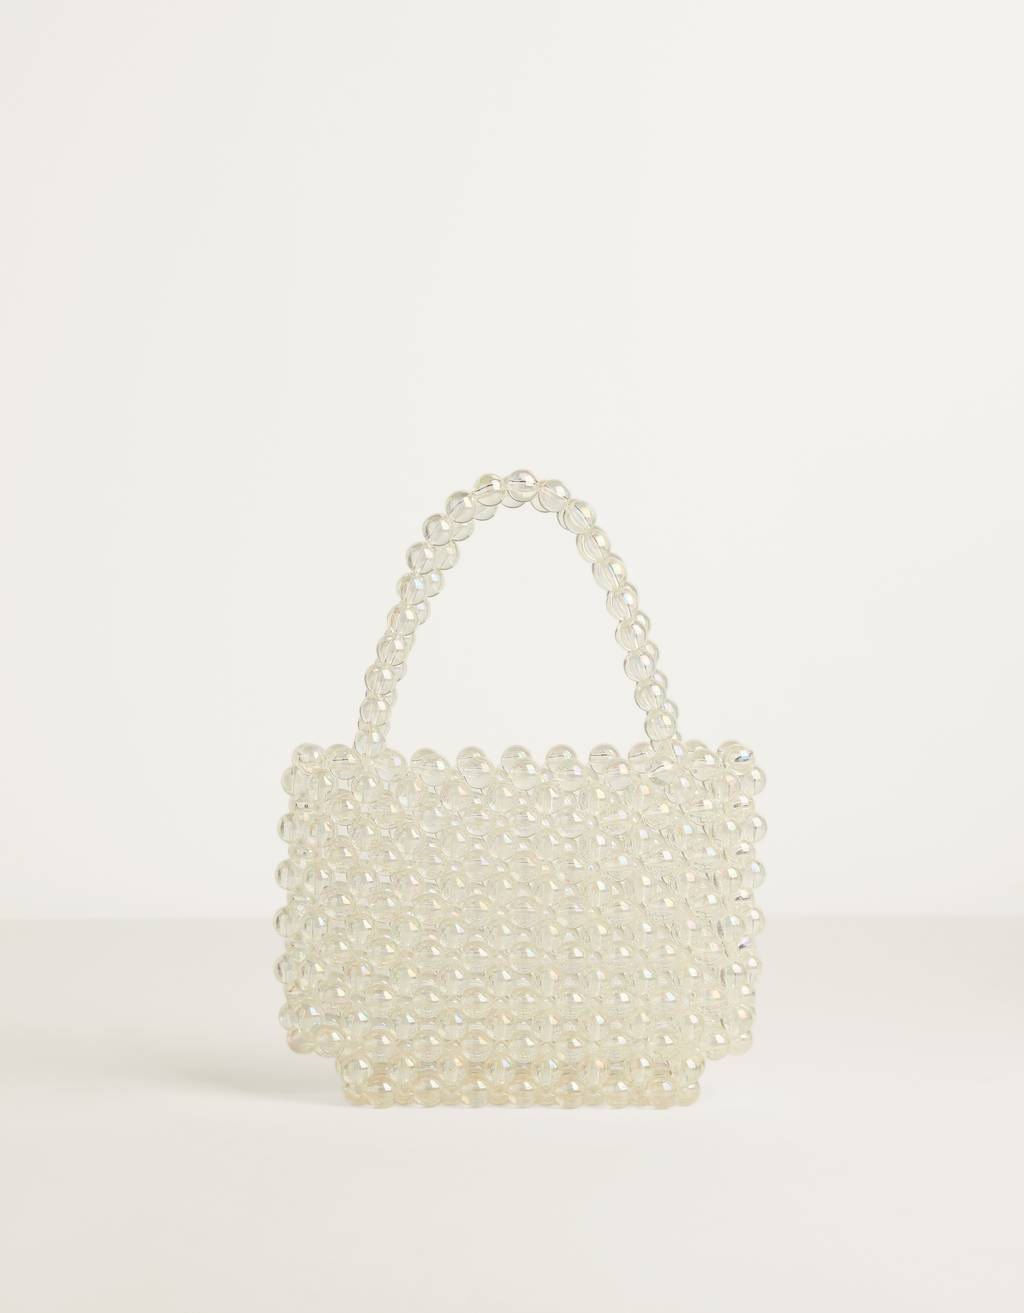 Iridescent faux pearl bag